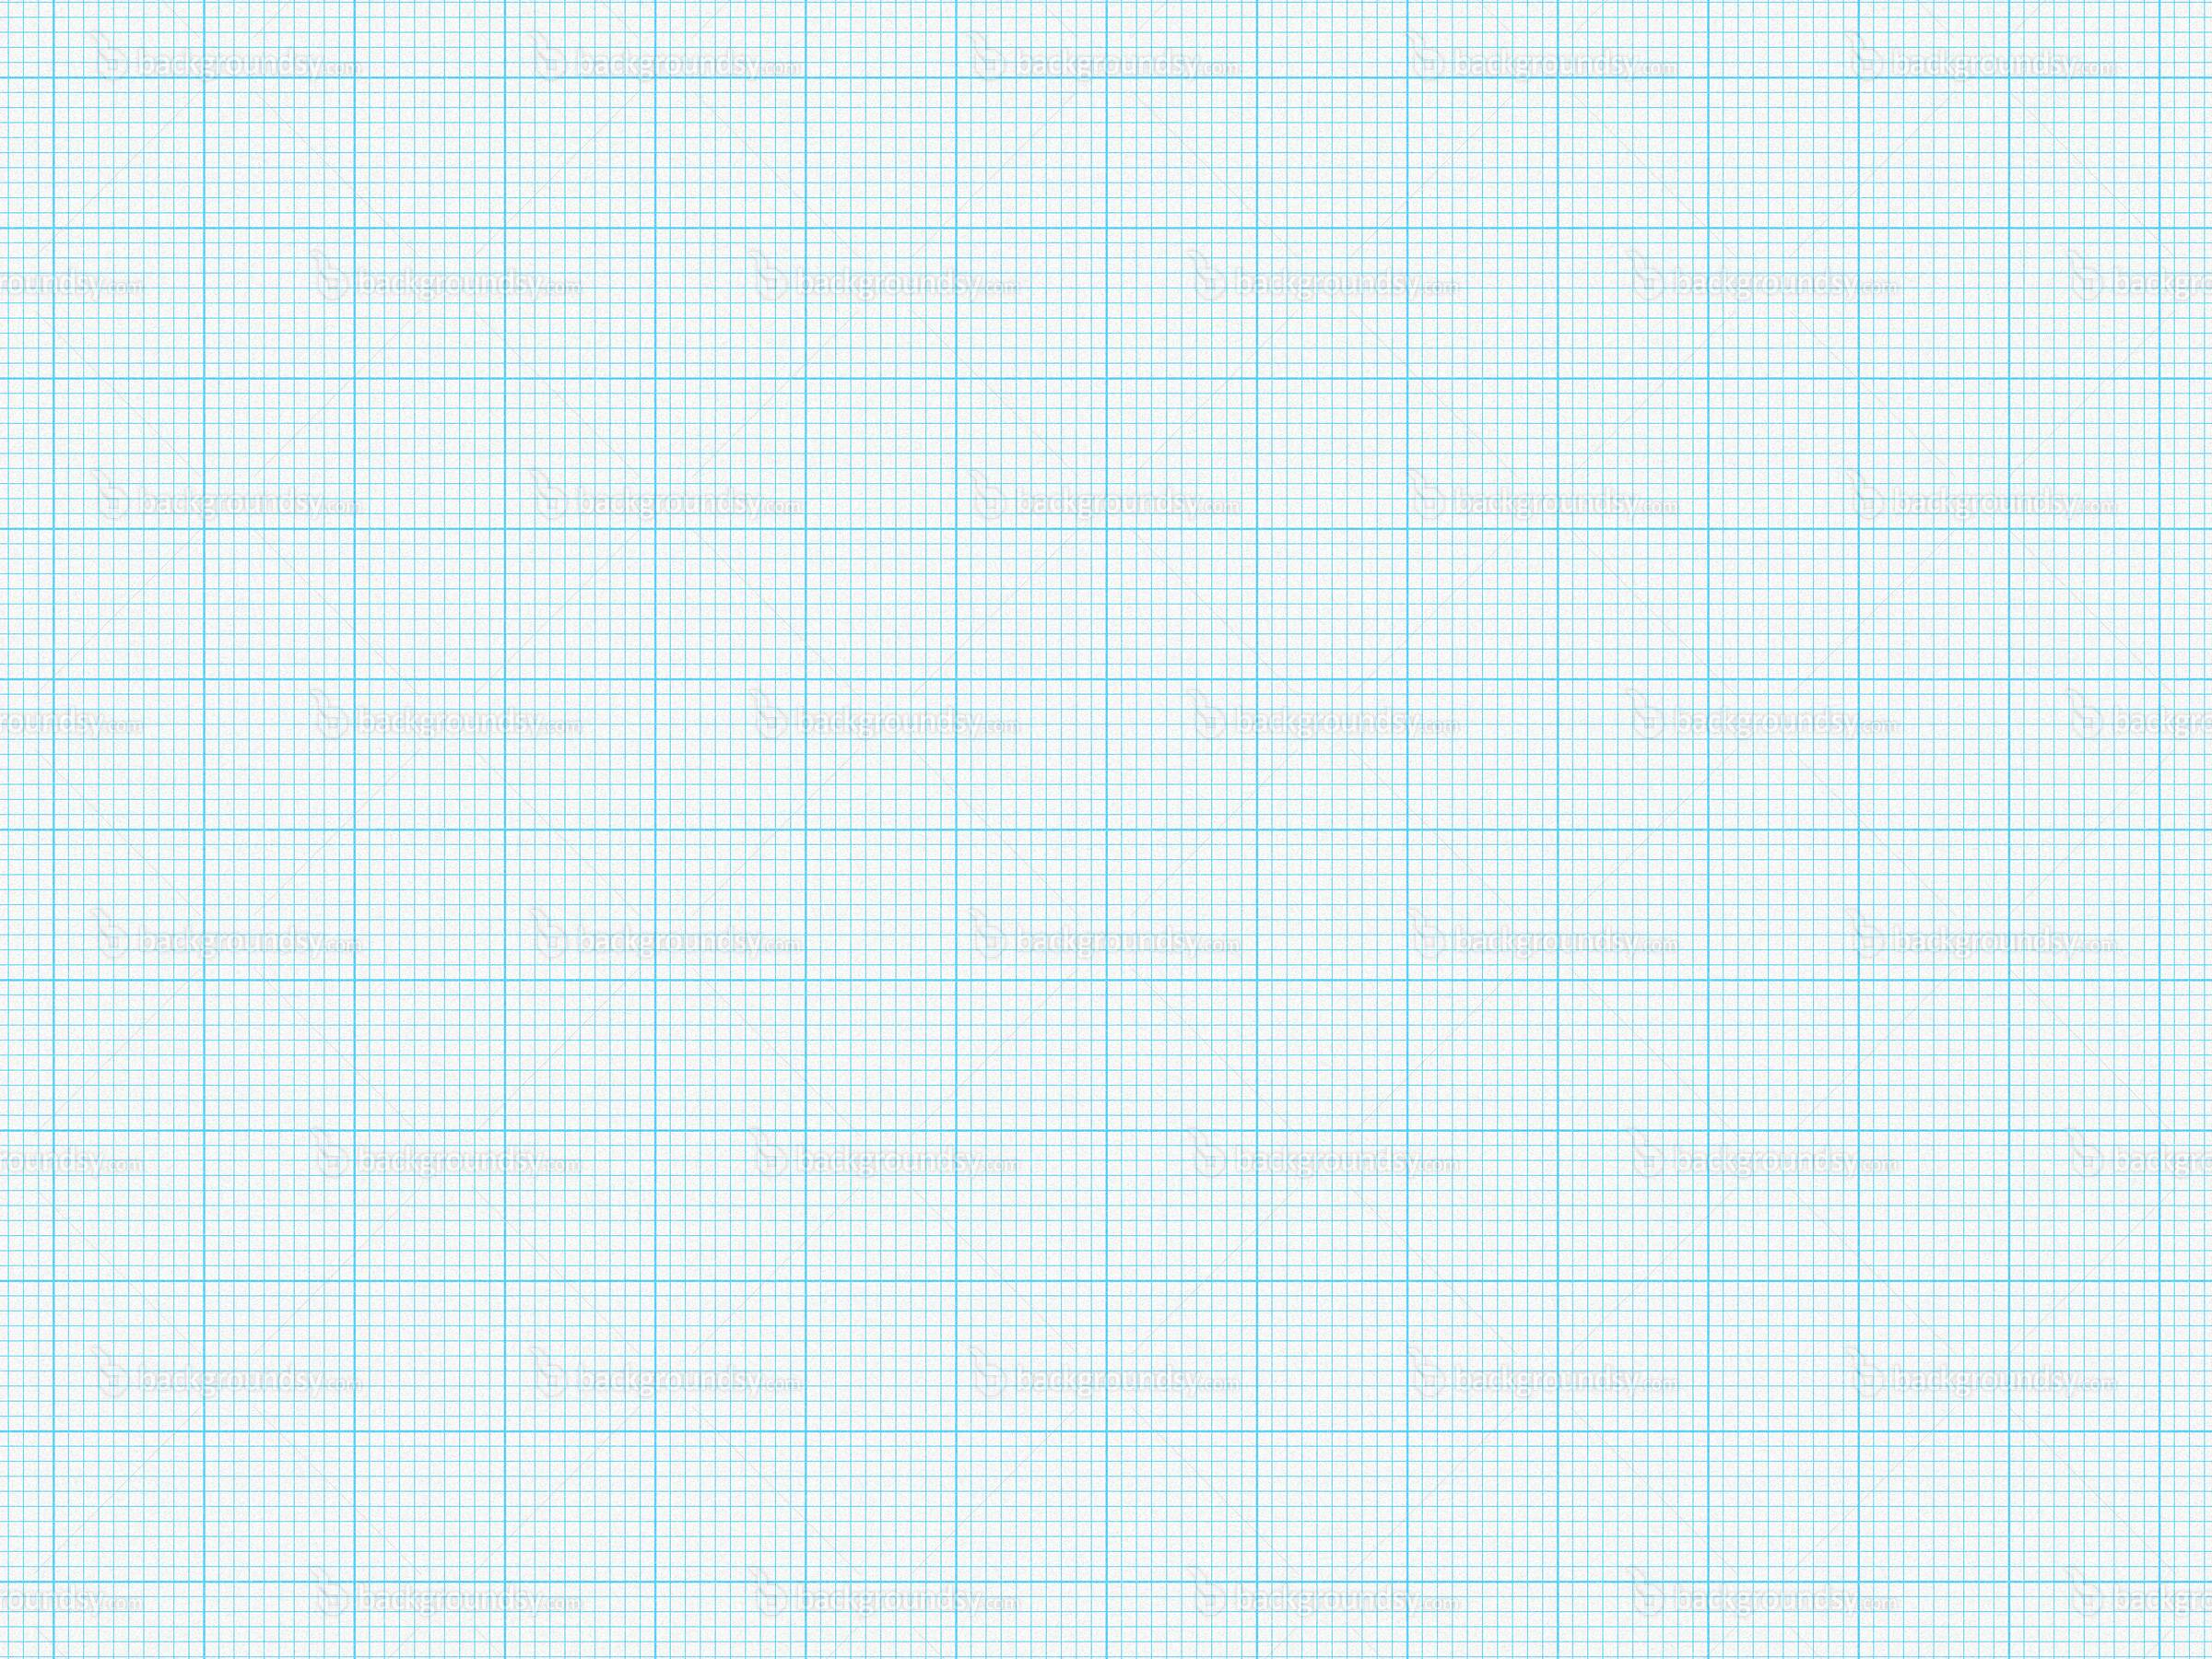 graph paper wallpapers - wallpaper cave